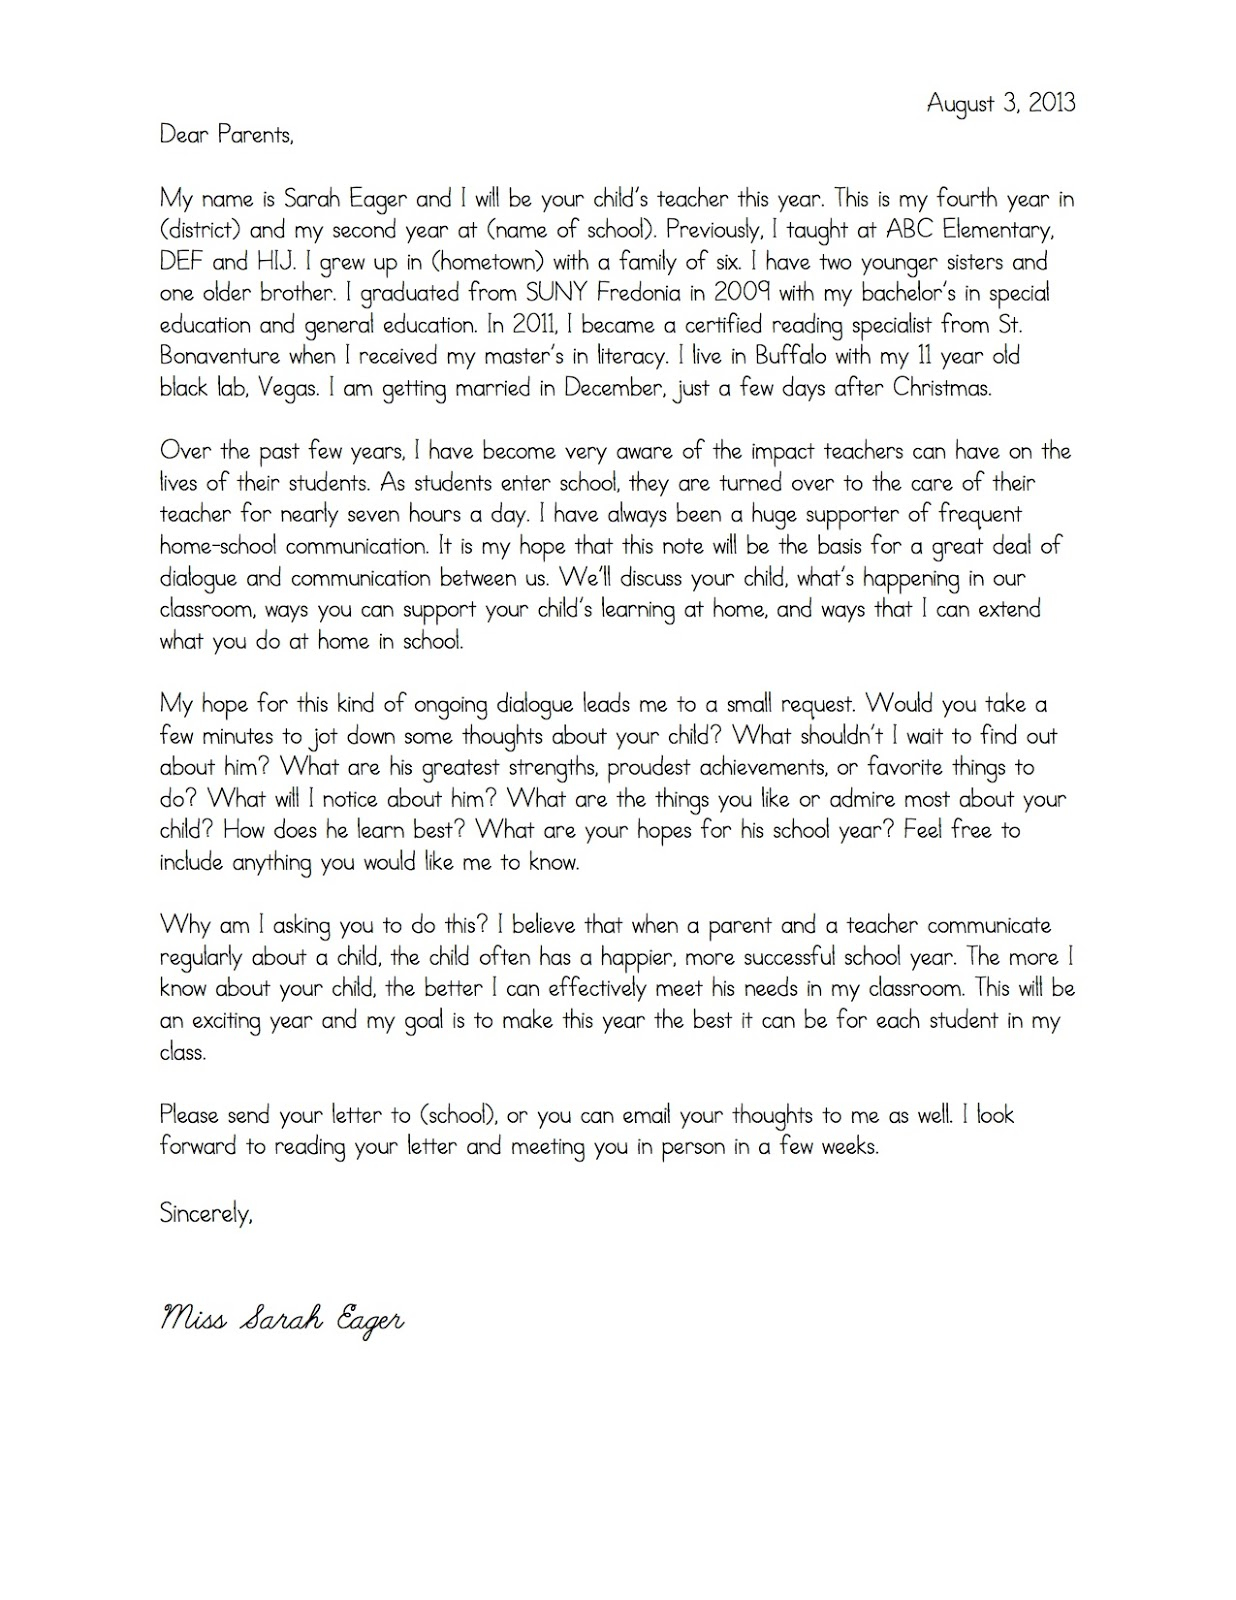 Teacher Welcome Letter to Parents Template - Wel E Parent Letters From Teachers Copy Email Email to Parents